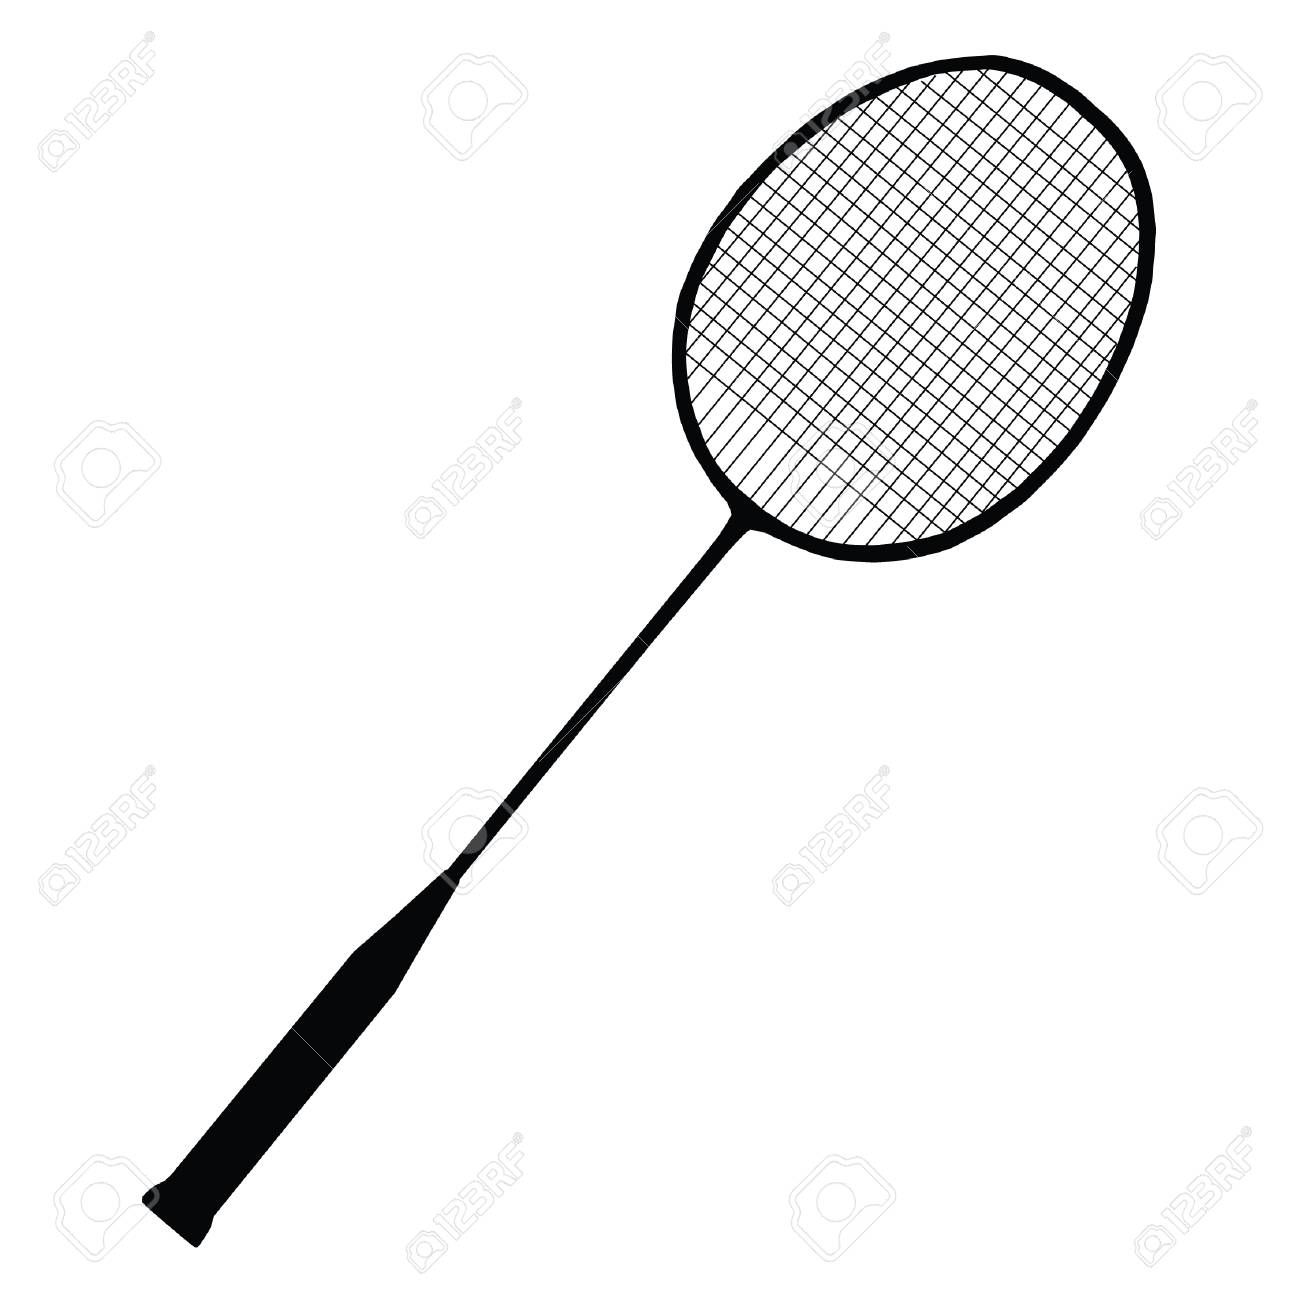 A Black And White Silhouette Of A Badminton Racket Sponsored White Black Silhouette R Badminton Racket Rackets Professional Business Cards Templates